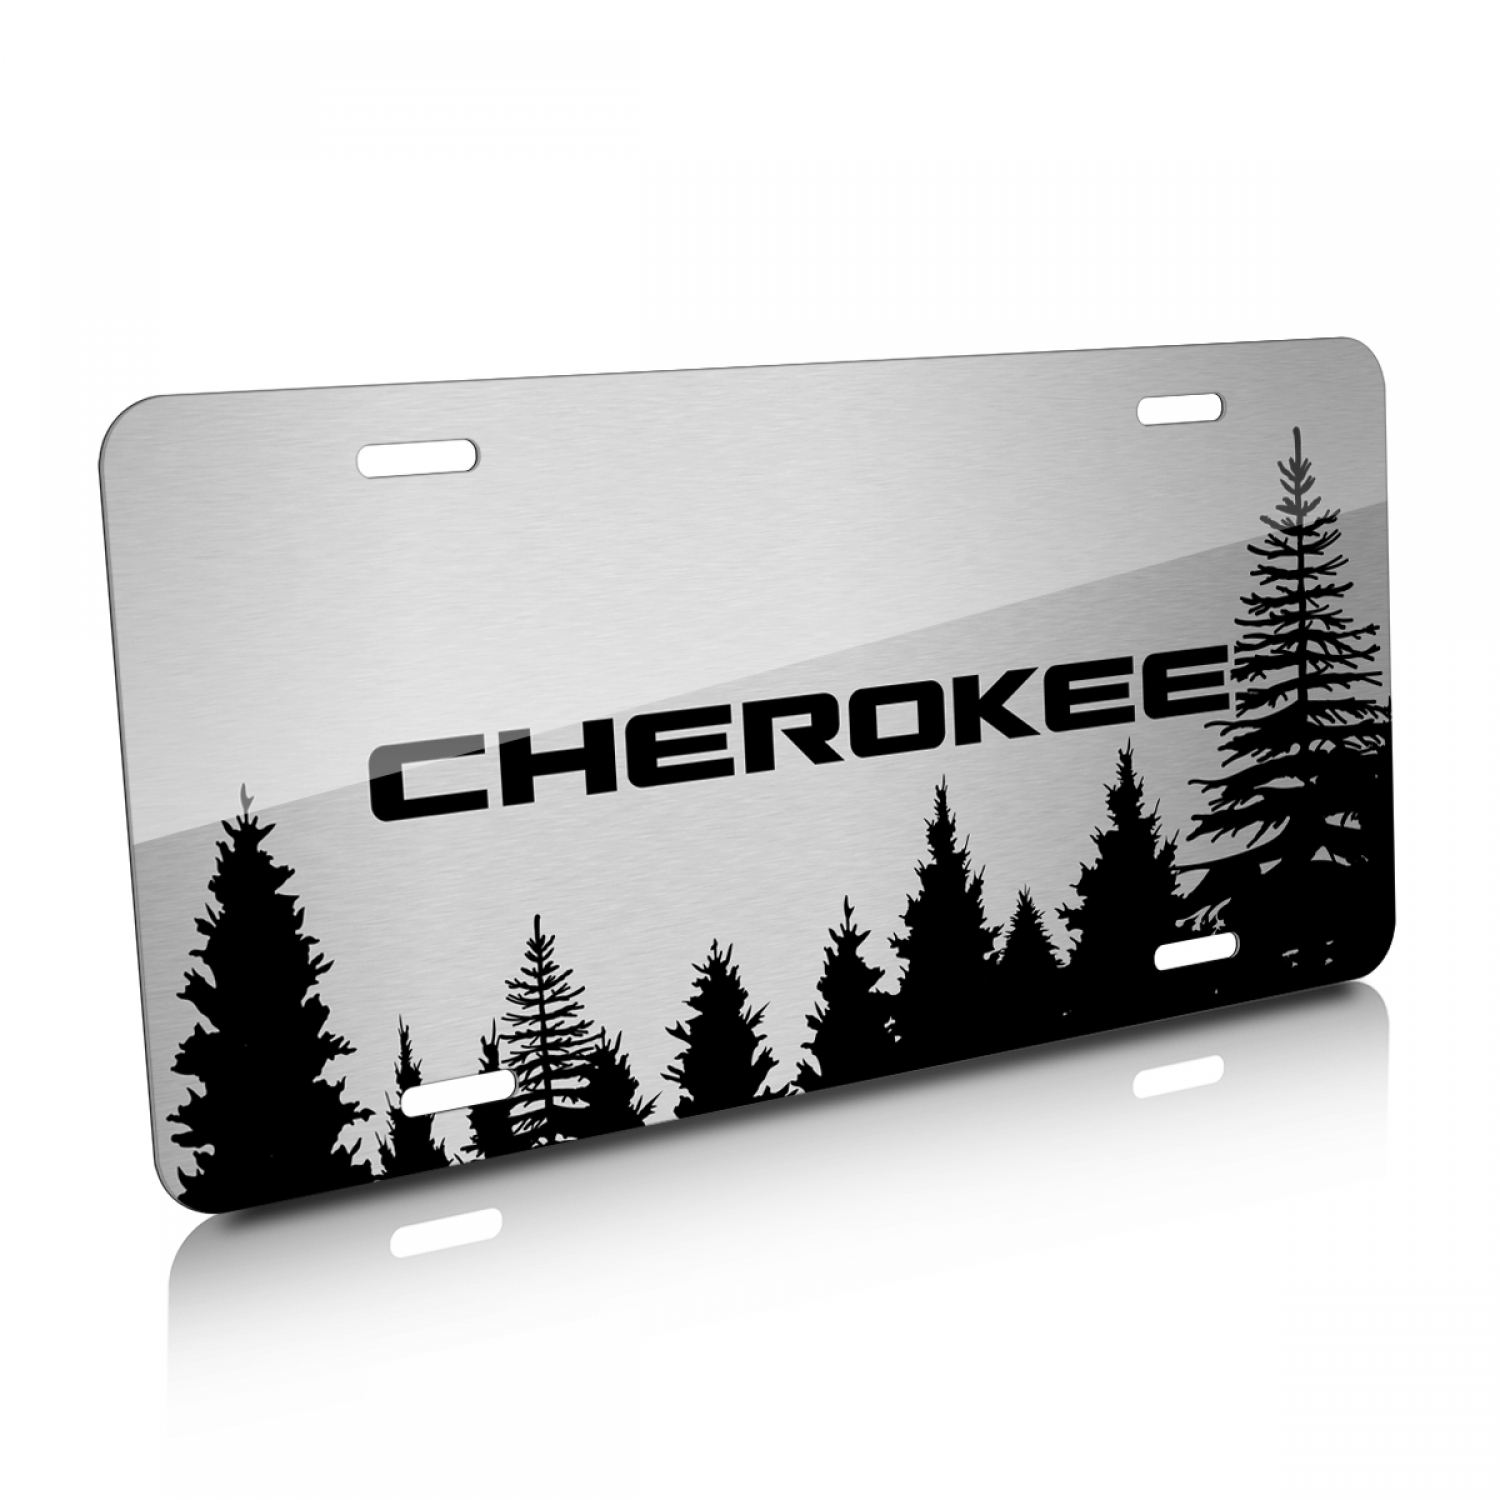 Jeep Cherokee Forrest Sillhouette Graphic Brush Aluminum License Plate